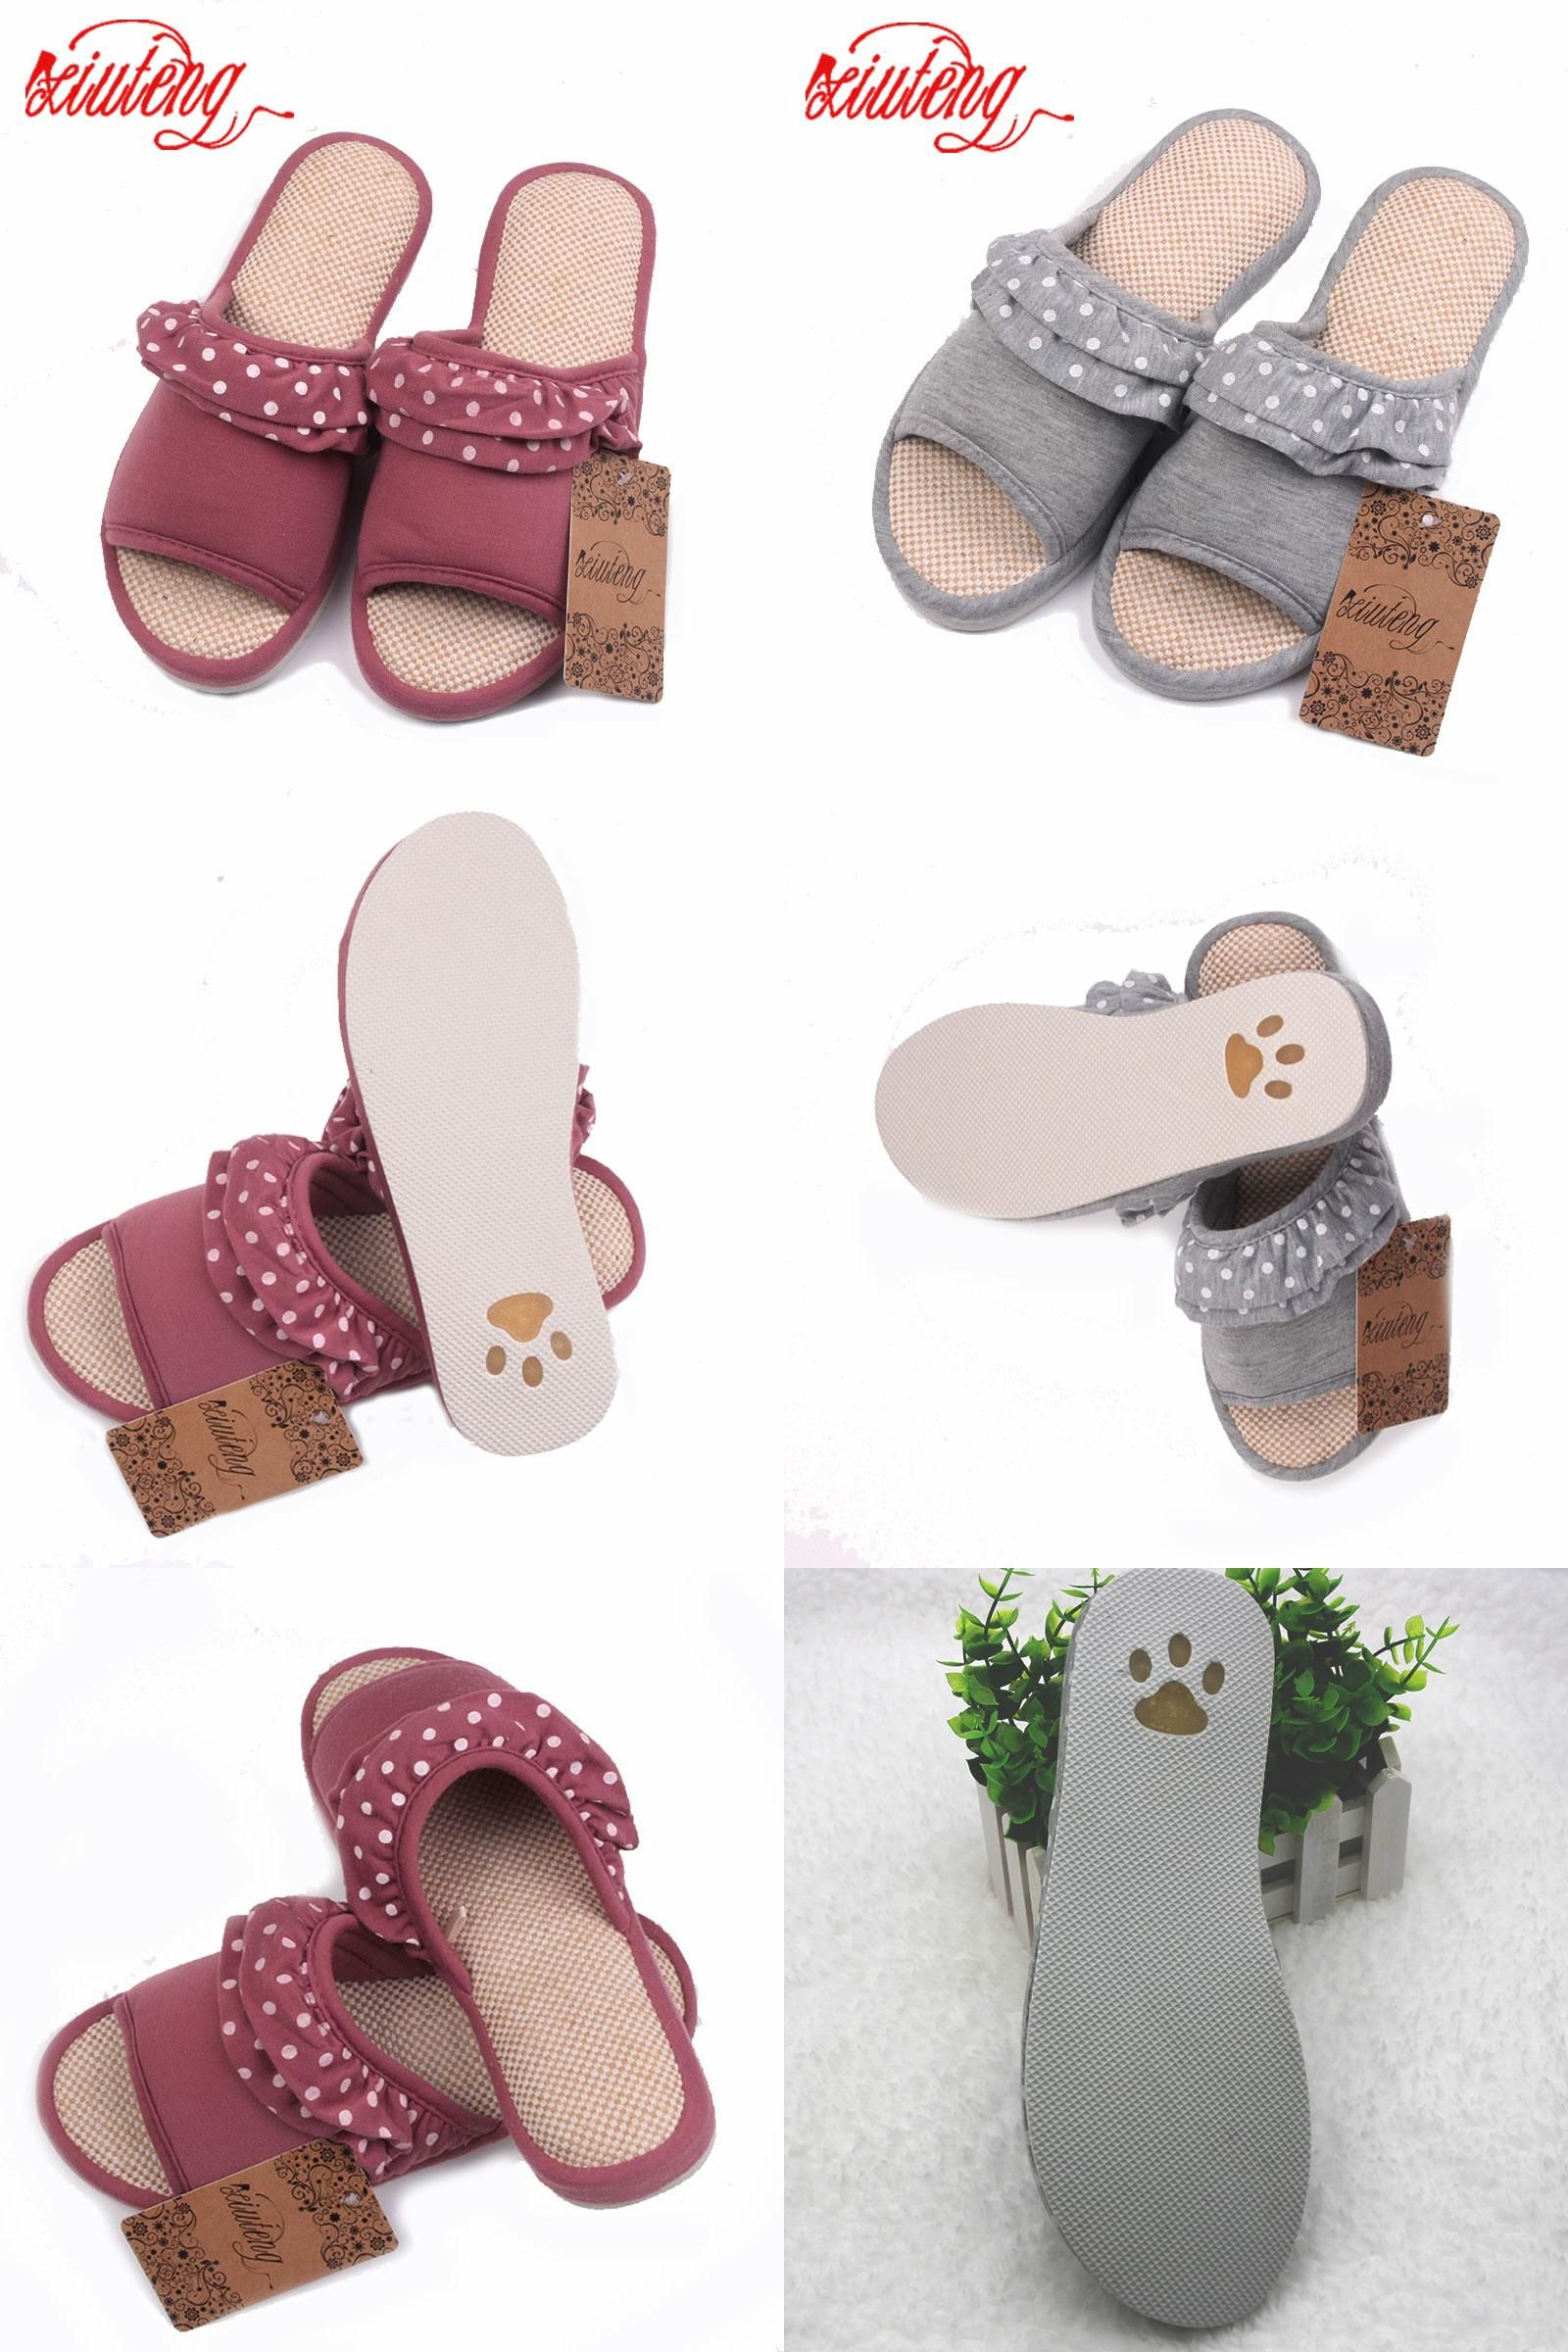 Visit to Buy  2017 Women Summer Sandals Hemp Soft Slippers Lace decoration Casual  Shoes e03d2f40275c